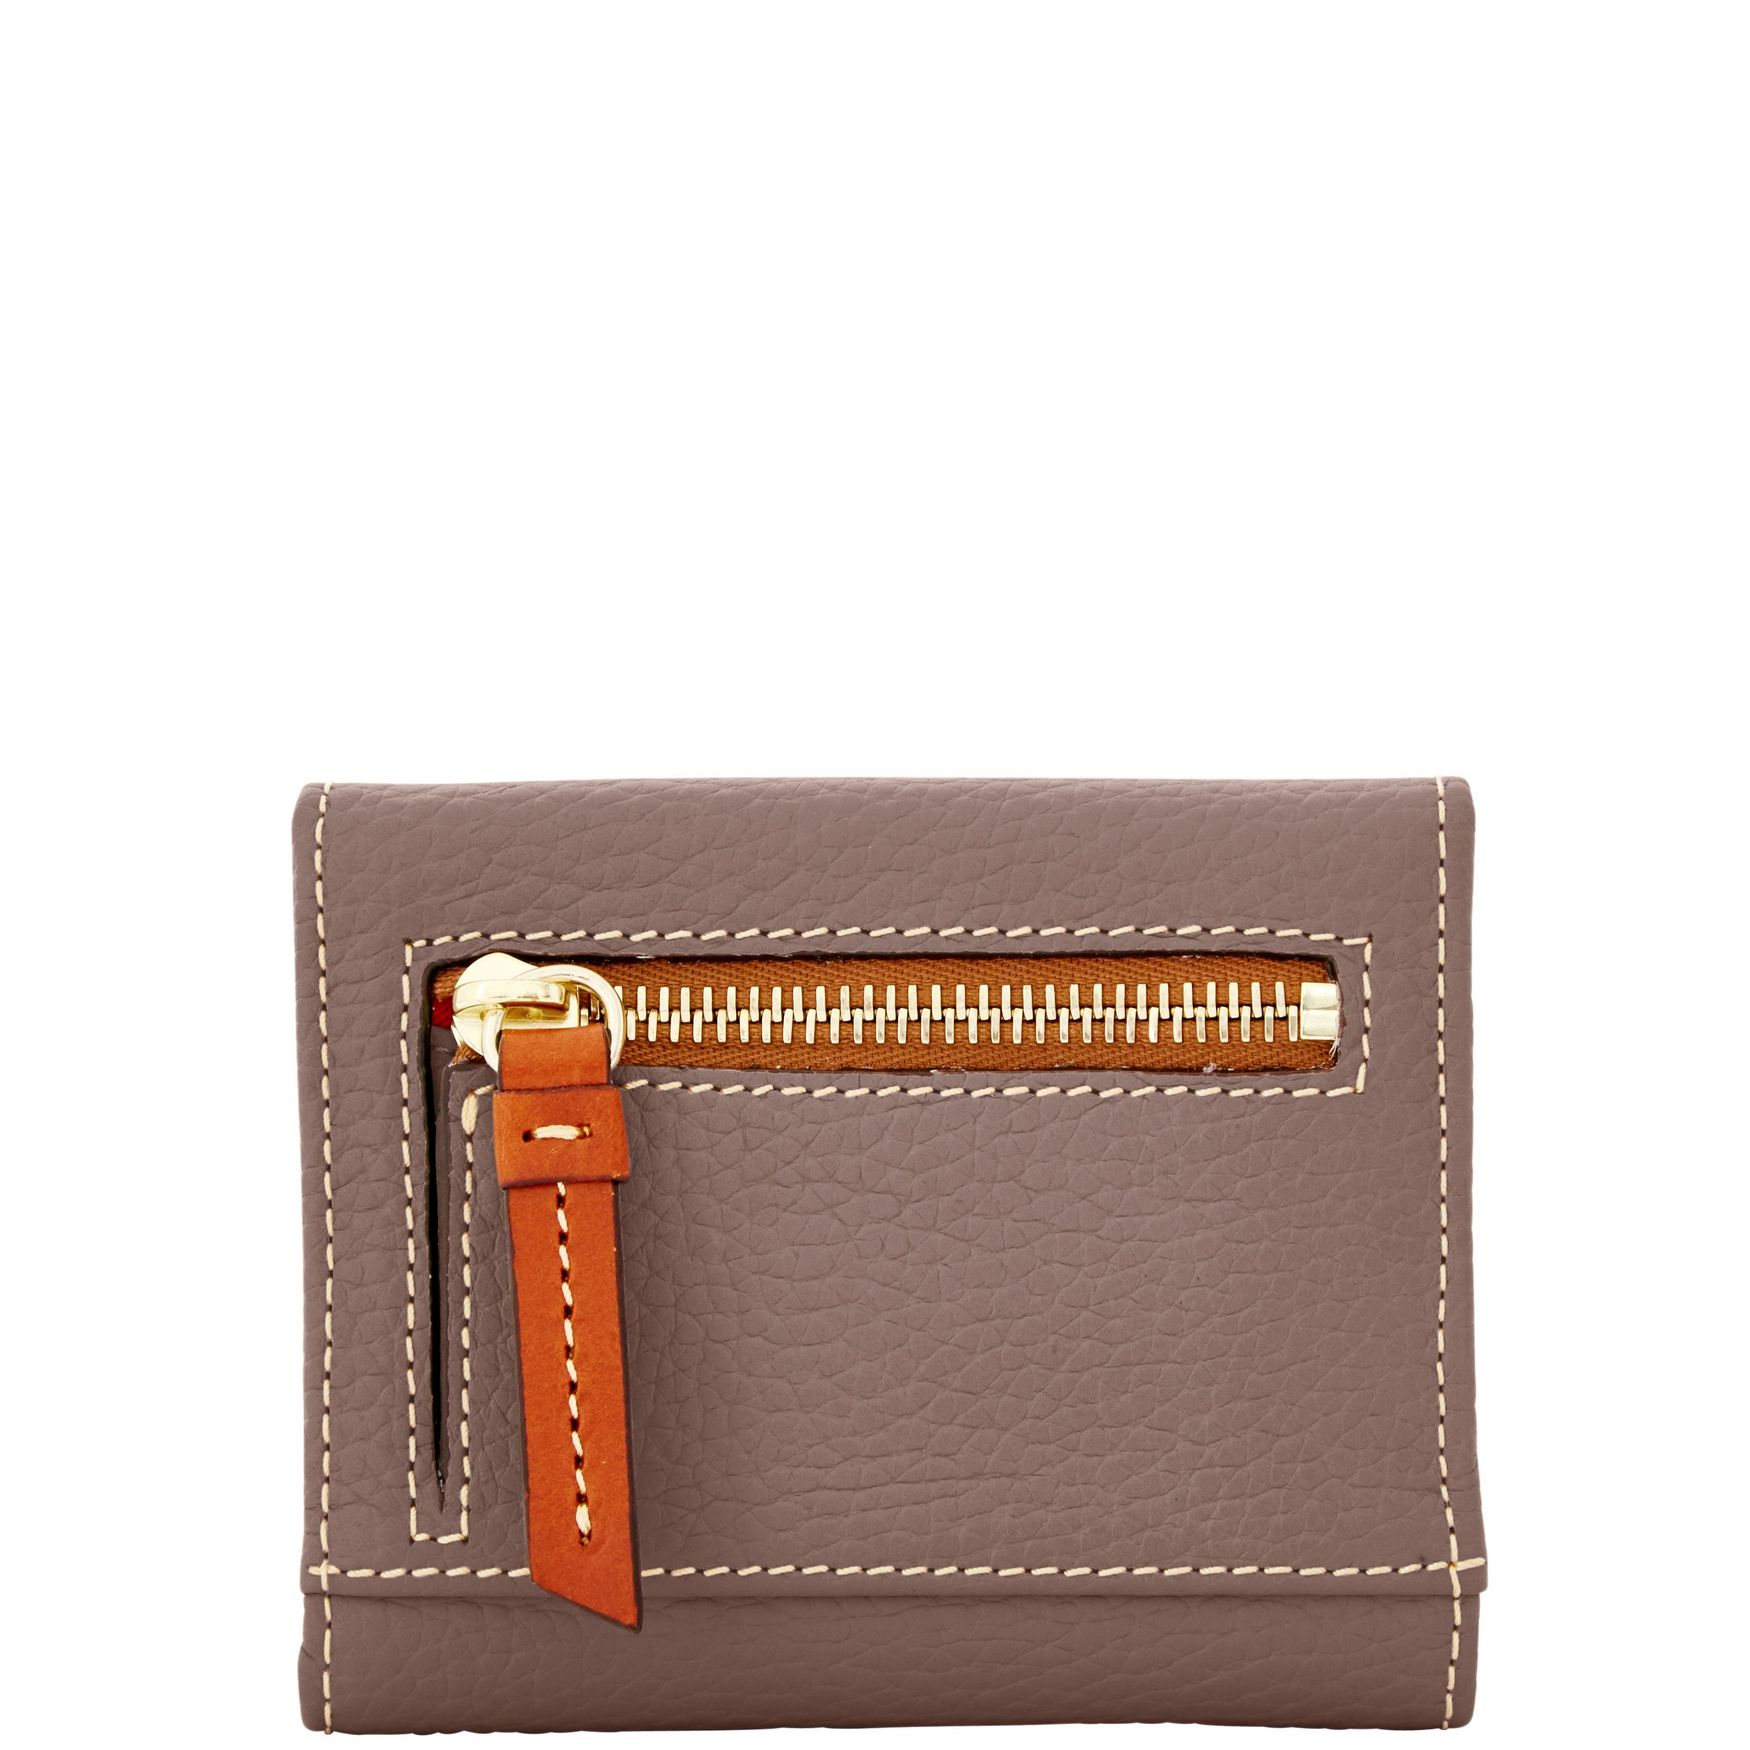 Dooney-amp-Bourke-Pebble-Grain-Small-Flap-Wallet thumbnail 34